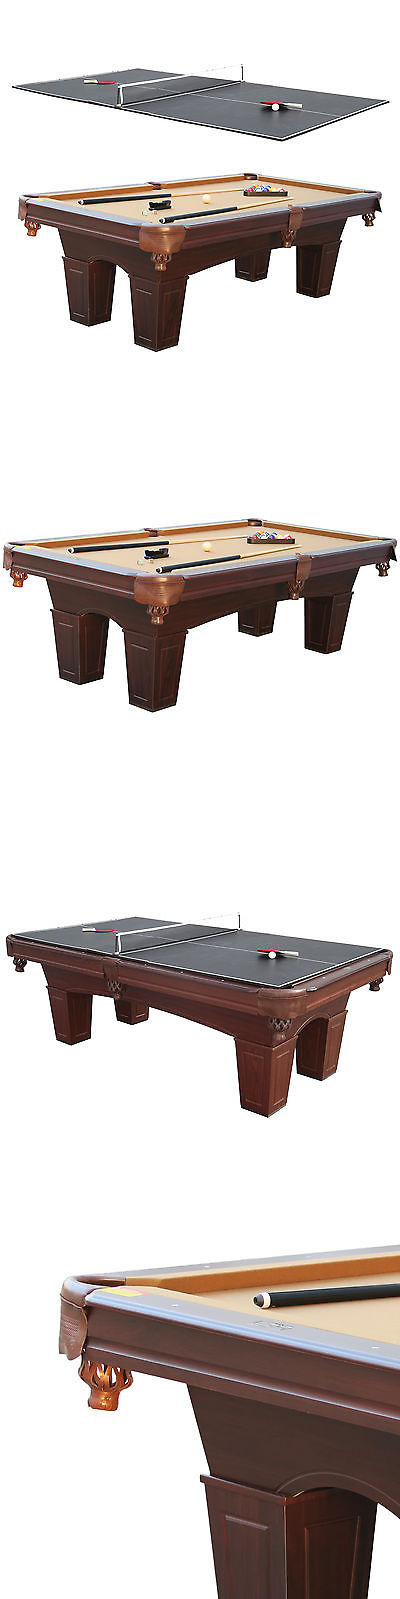 Tables 21213: Barrington 8 Square Leg Billiard Pool Table And Table Tennis  Top W Accessories